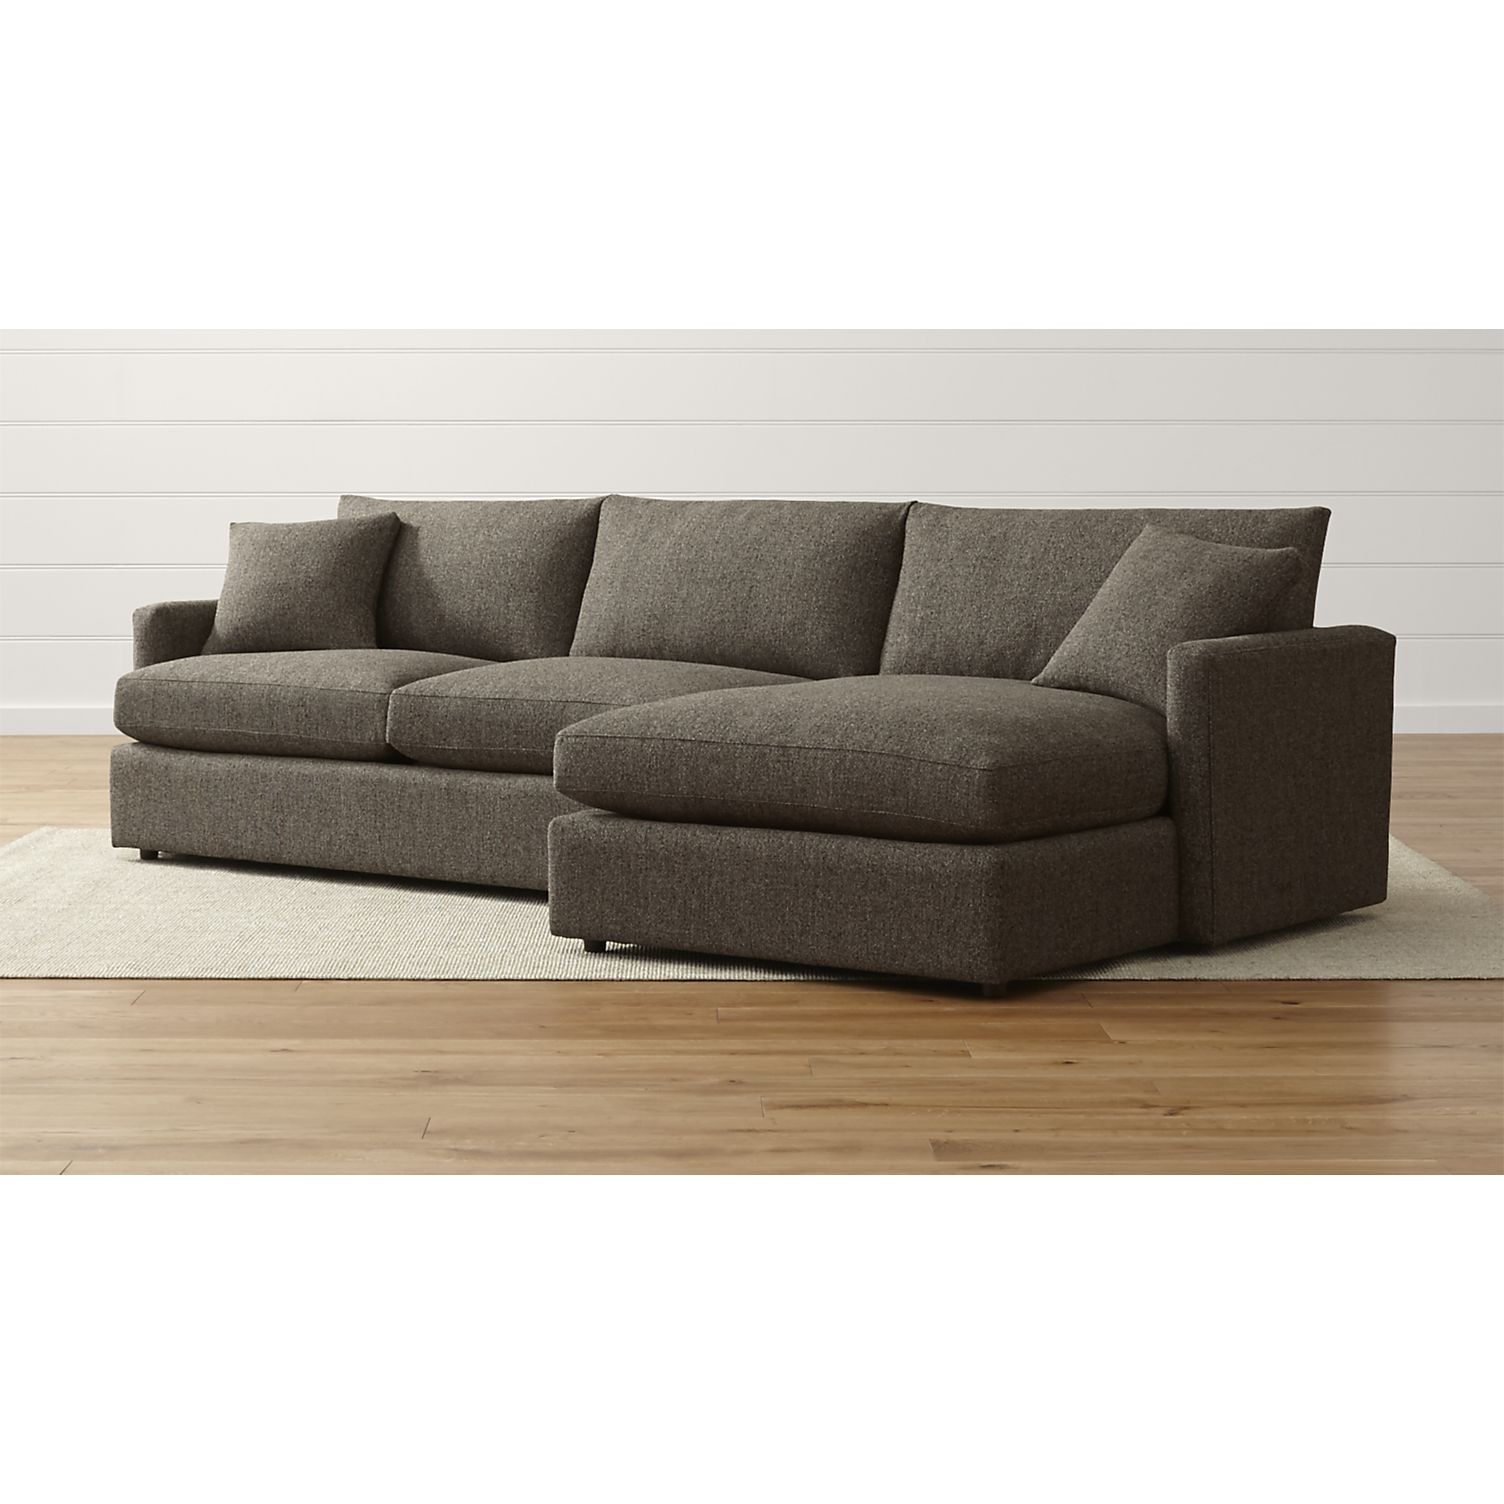 Lounge Shallow Sectional Sofa Reviews Crate And Barrel Sectional Sofa 2 Piece Sectional Sofa Grey Sectional Sofa